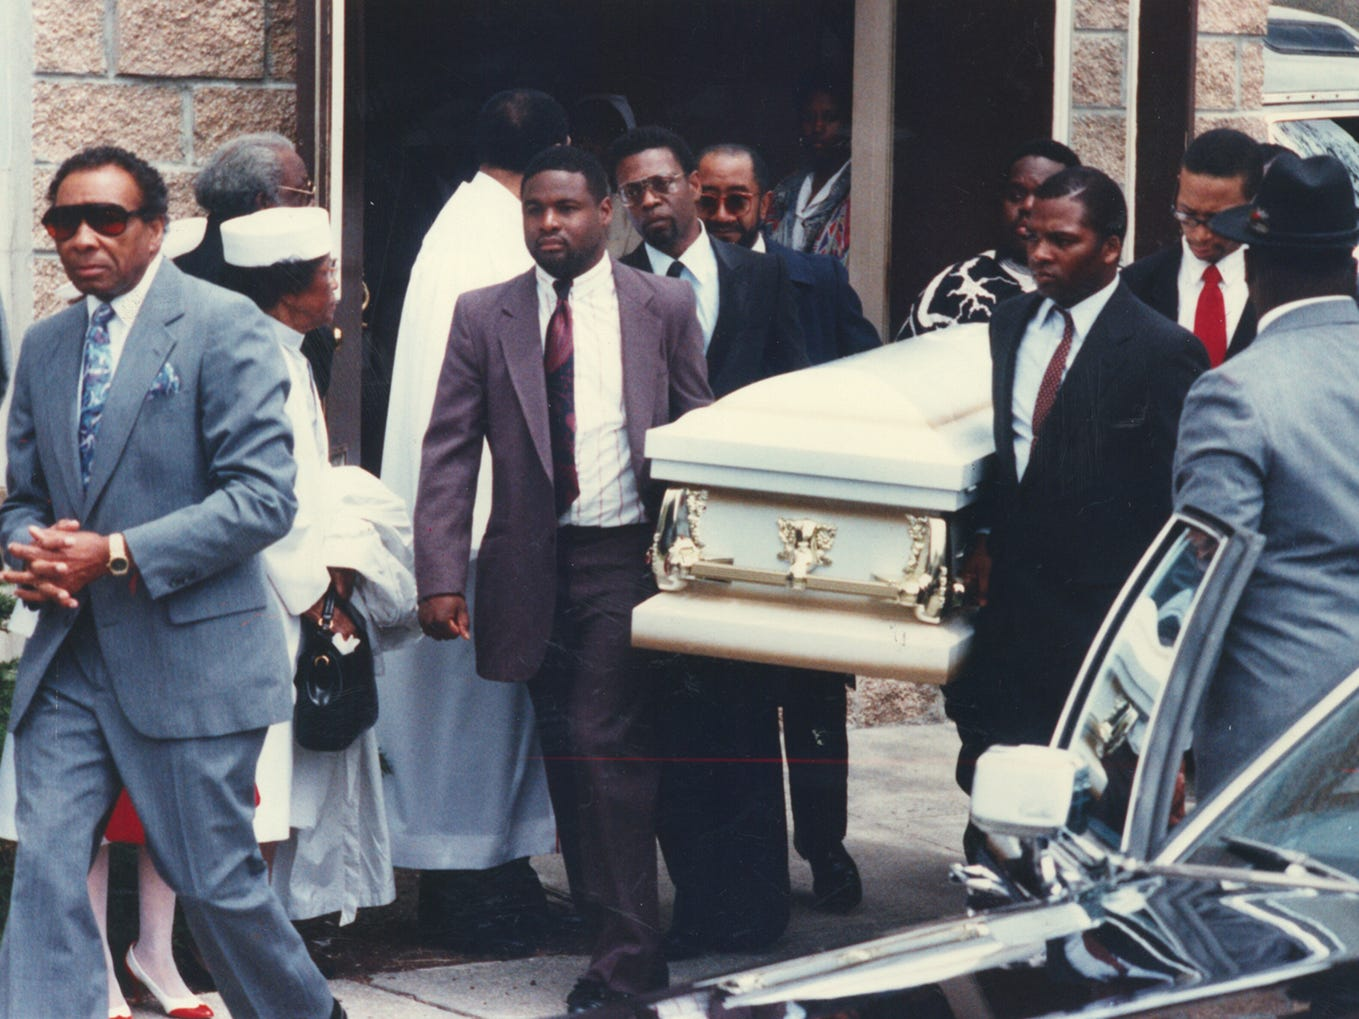 5/7/92 Funeral services for Quiana Dees, 12.